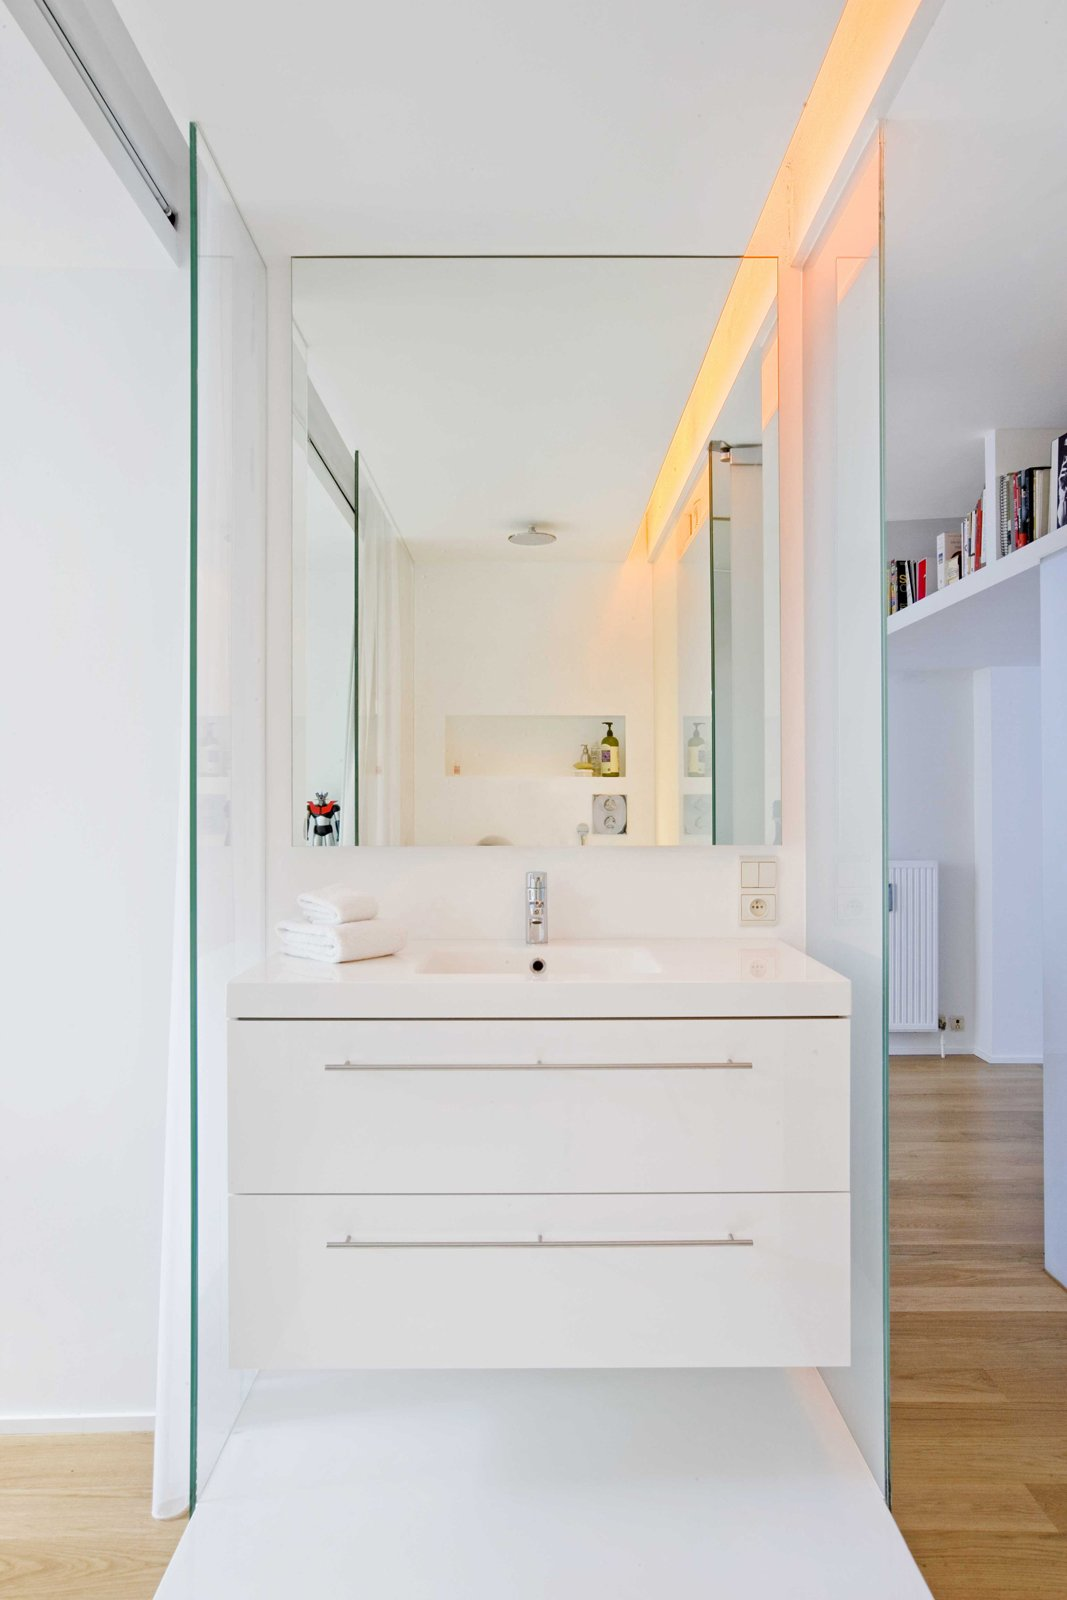 In an unconventional twist, the bathroom is separated into two rooms: a glass-walled shower/sink area shown here and a more private room for the toilet.  Casa H, Brussels by Diana Budds